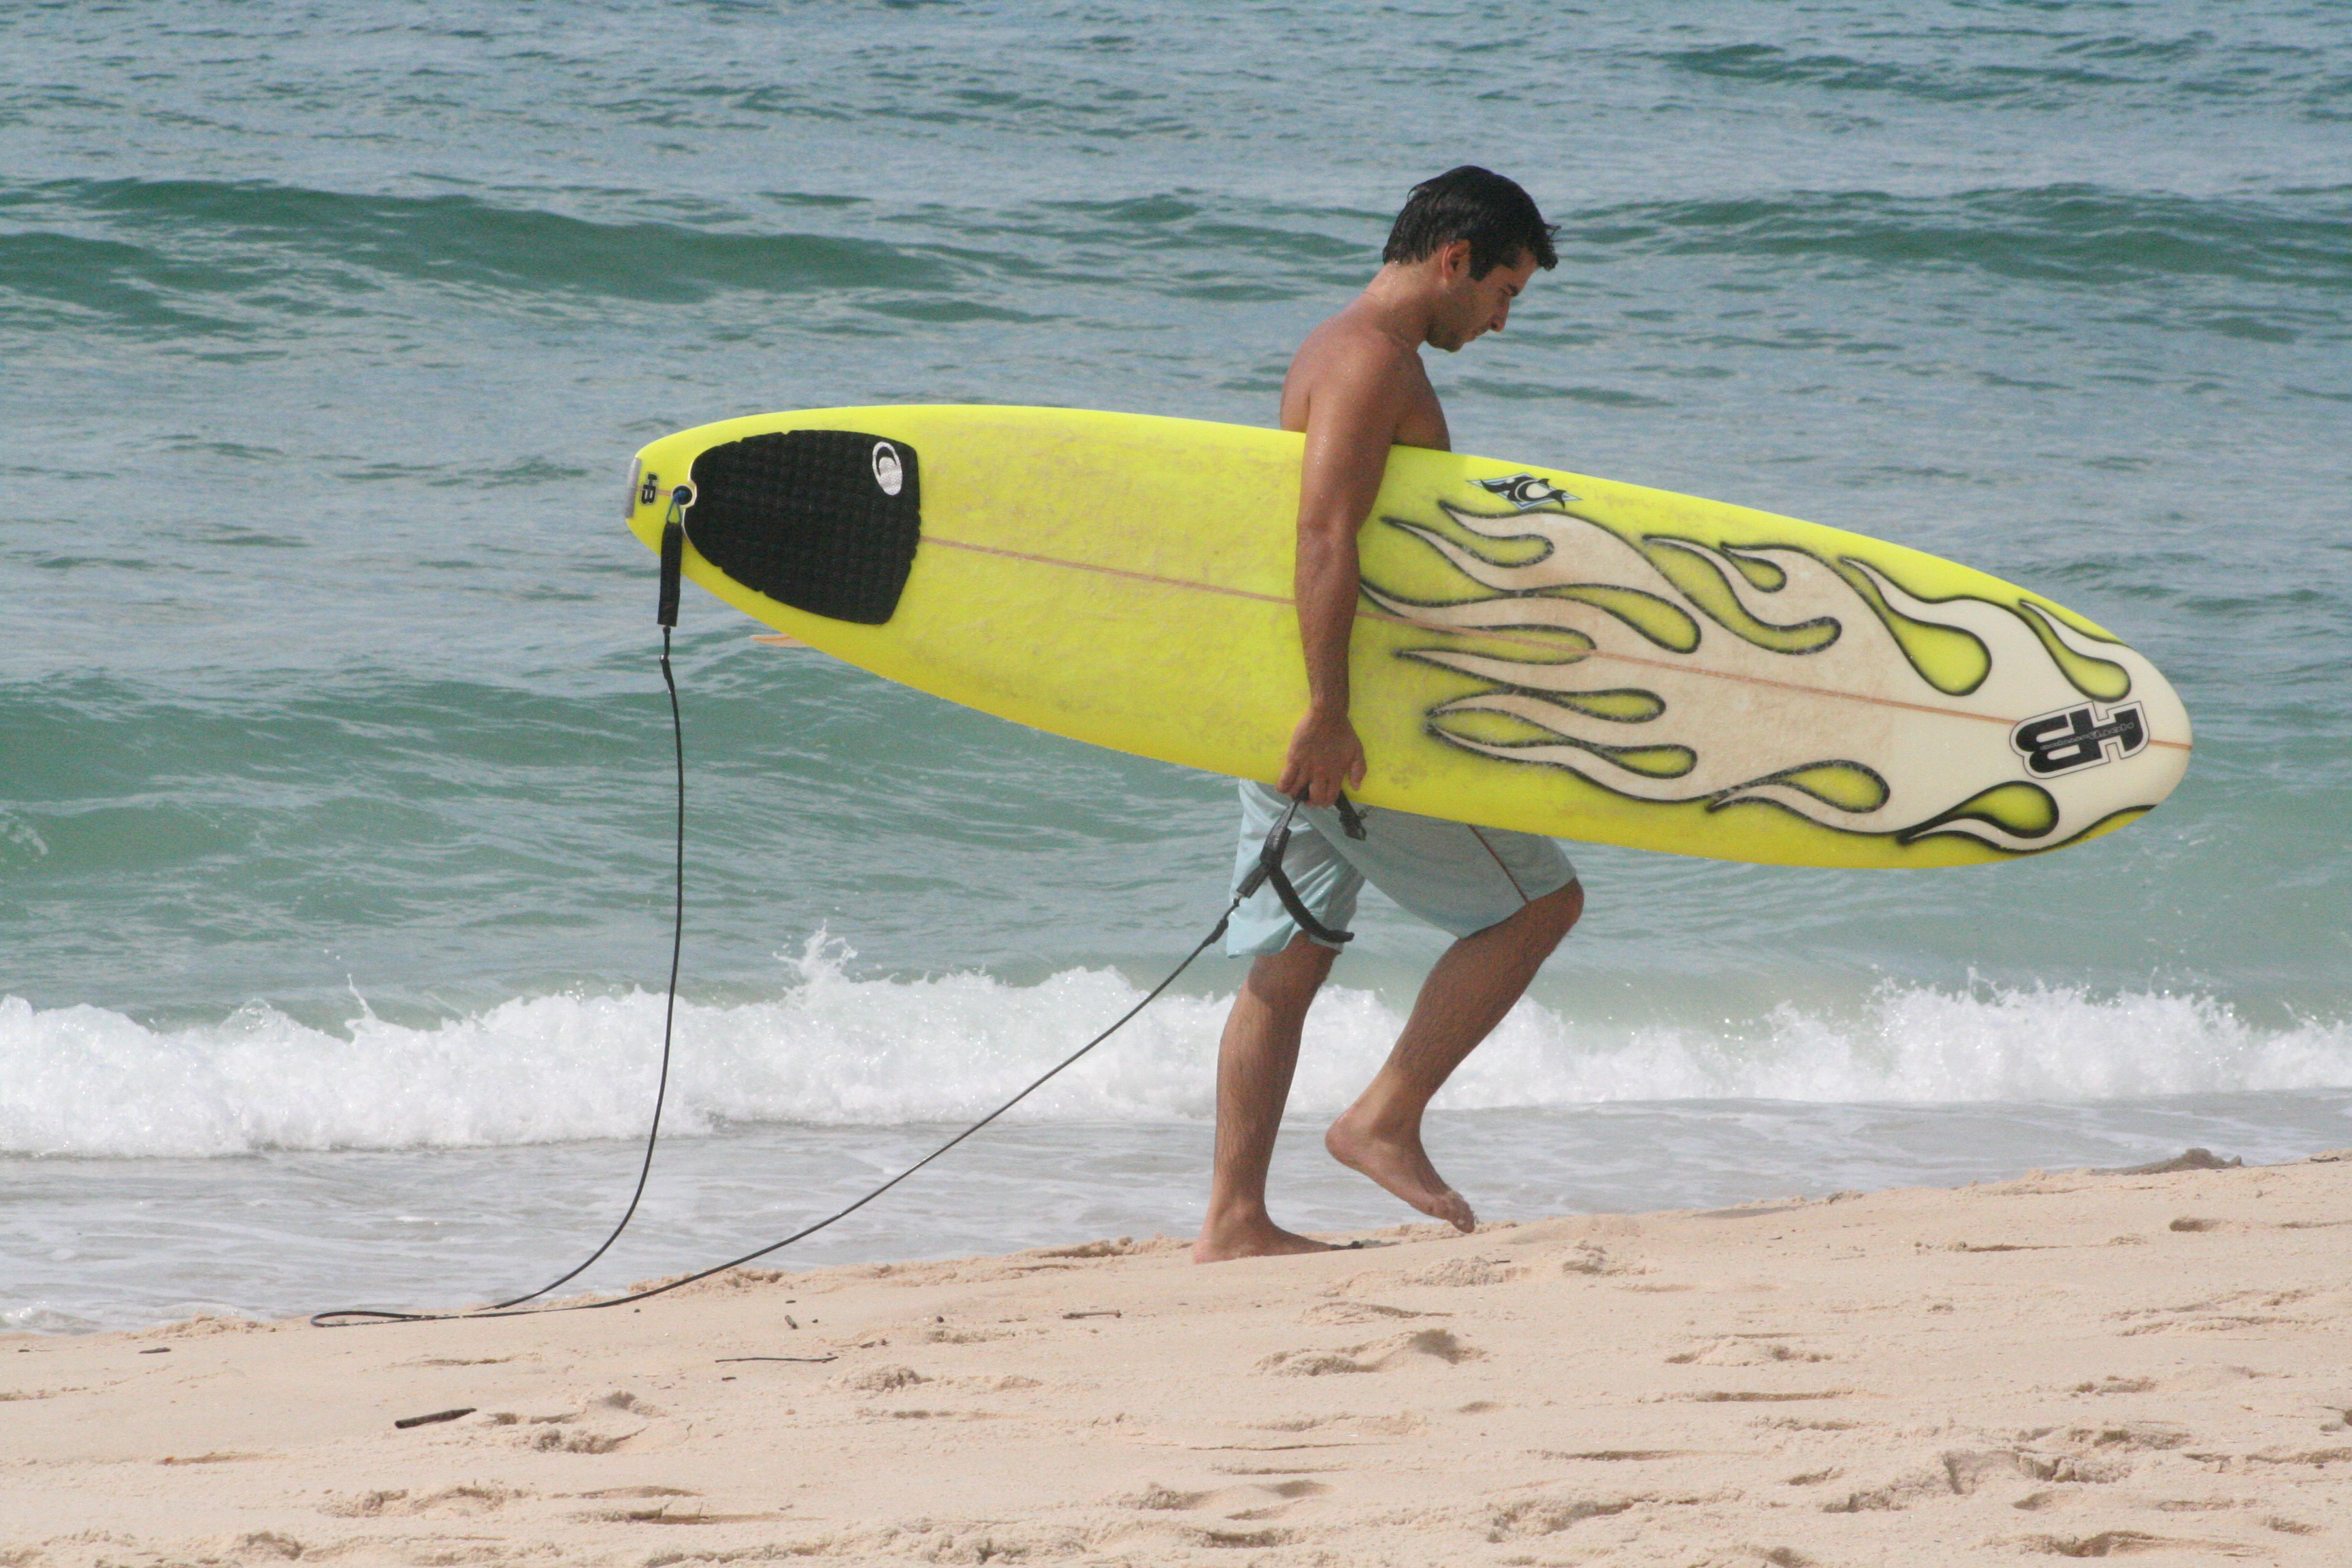 File:Sufer carrying surfboard along the beach.JPG - Wikipedia, the ...